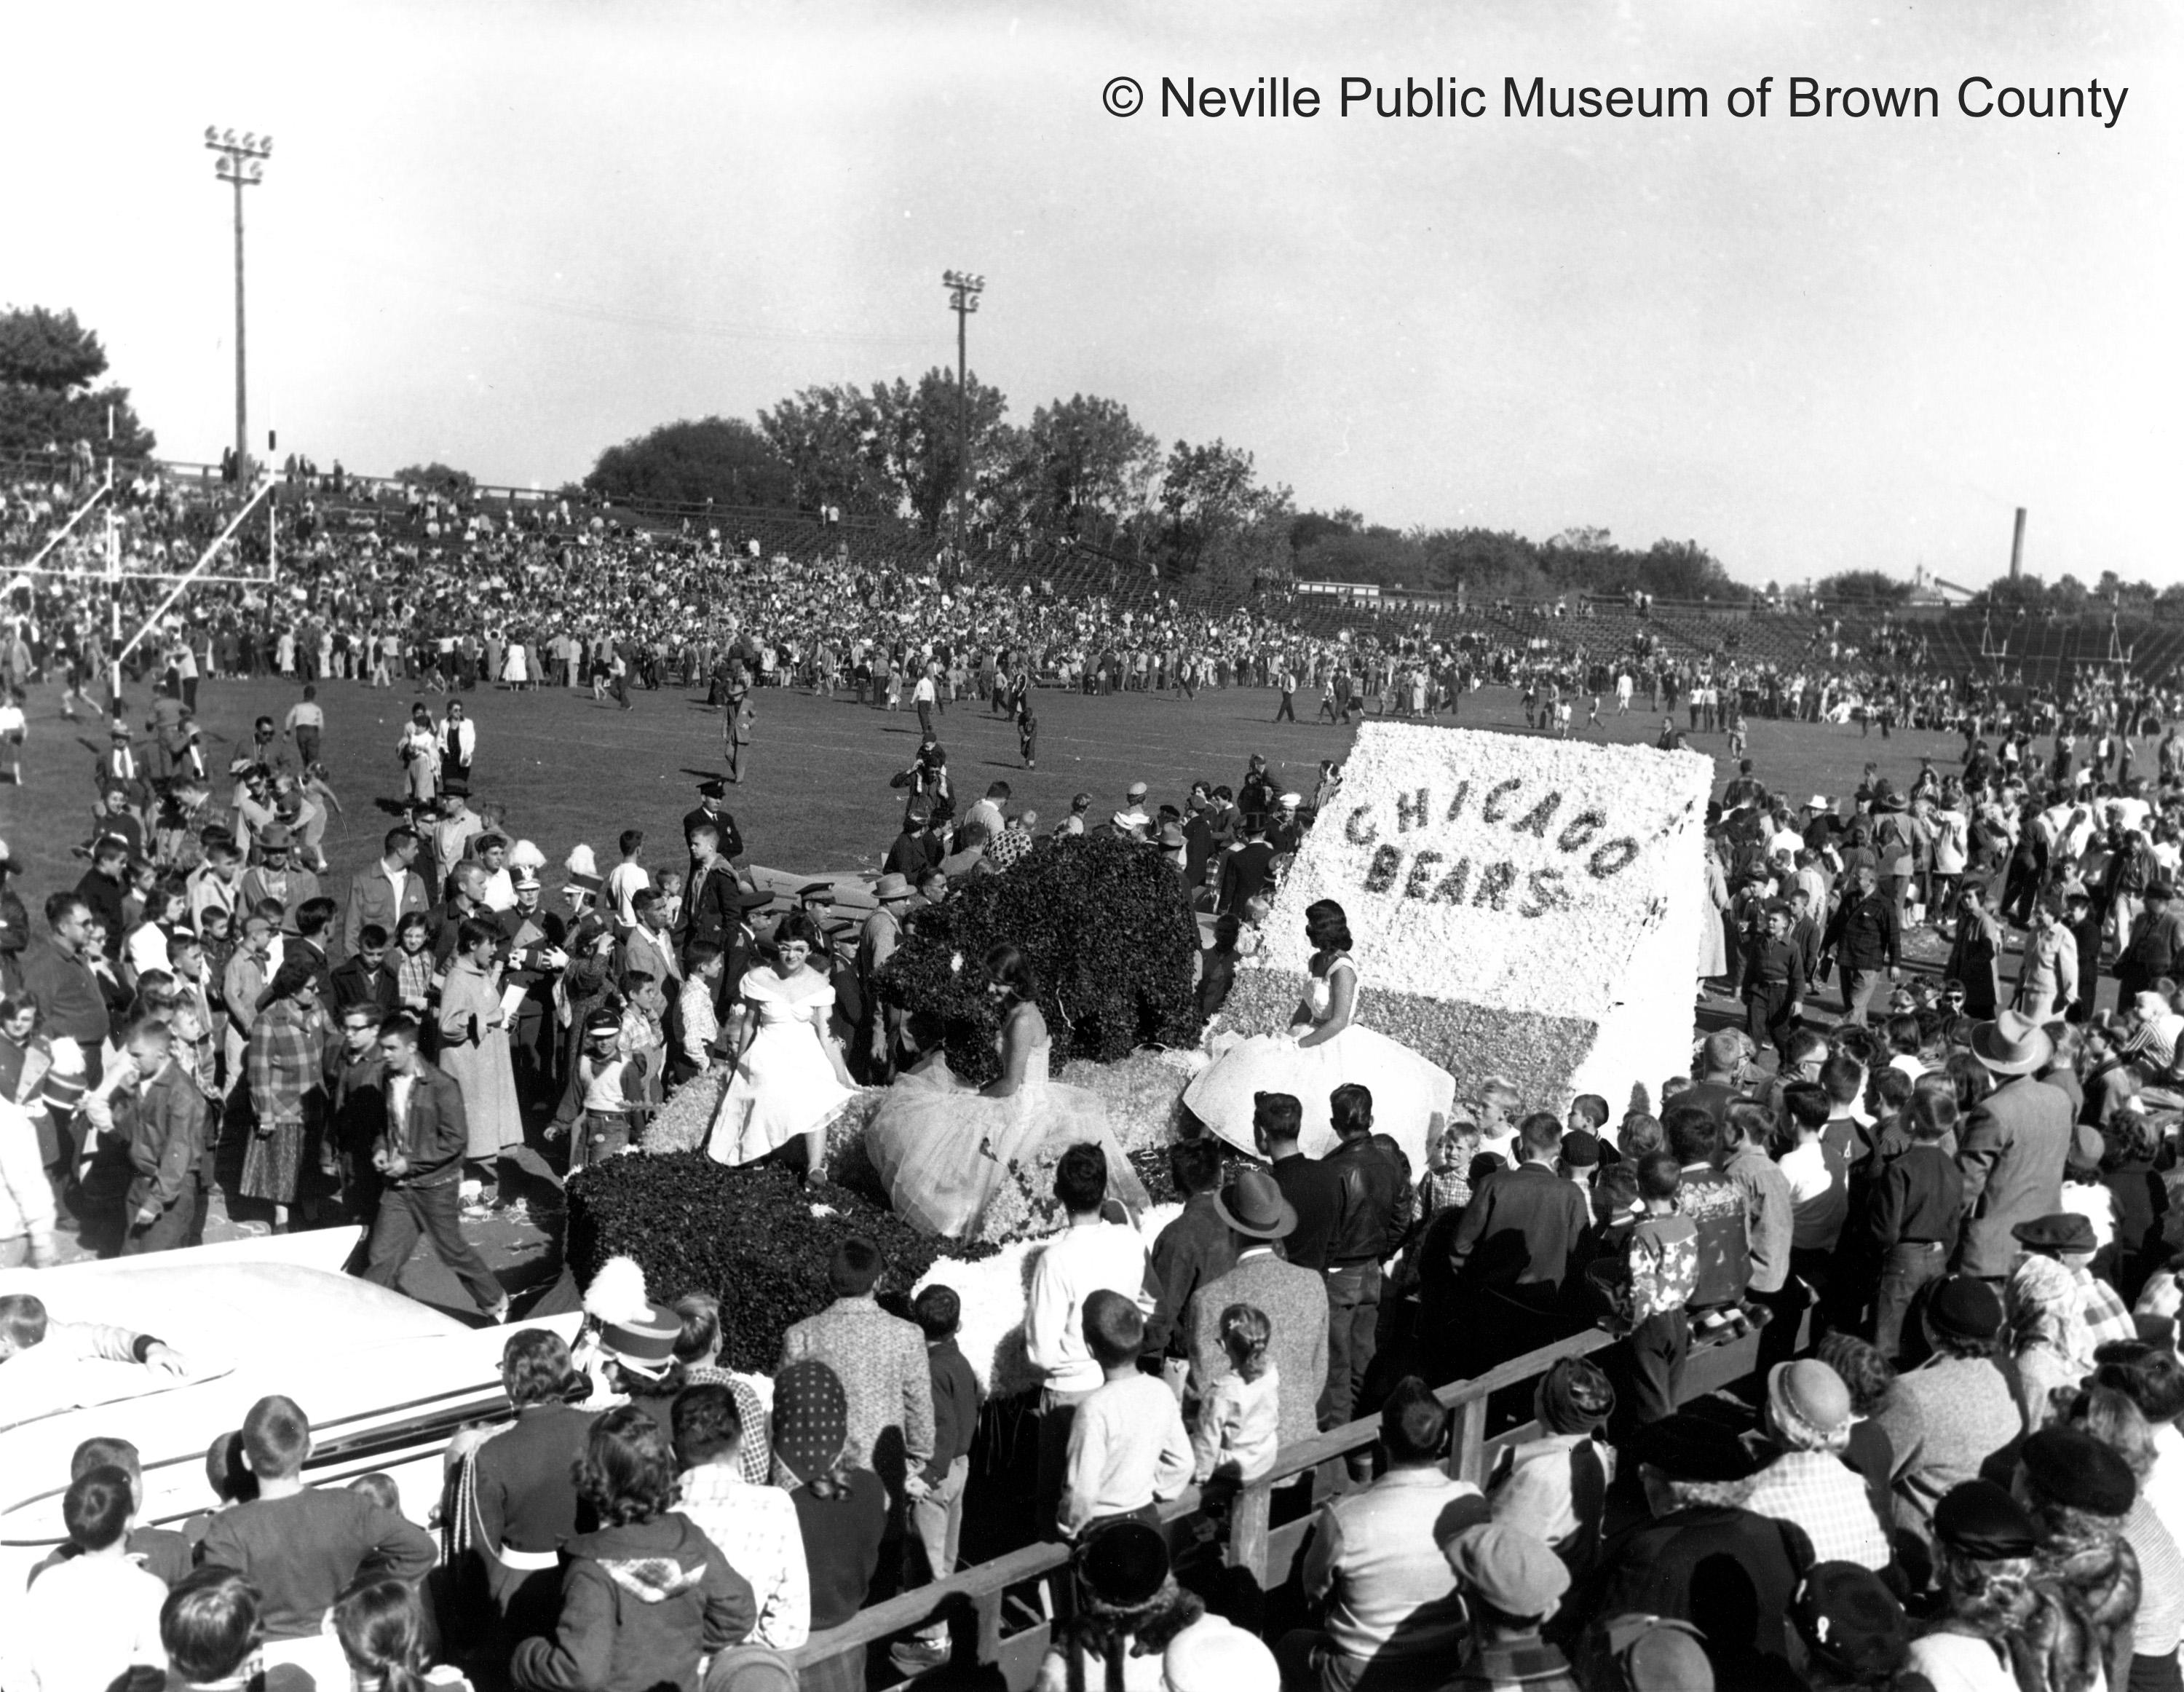 Big crowd at Packers-Bears game at City Stadium. The Packers and the NFL outgrew City Stadium in 1956. The facility could not be expanded with the East River on one side and Green Bay East High School on the other. (Courtesy: Neville Public Museum of Brown County)